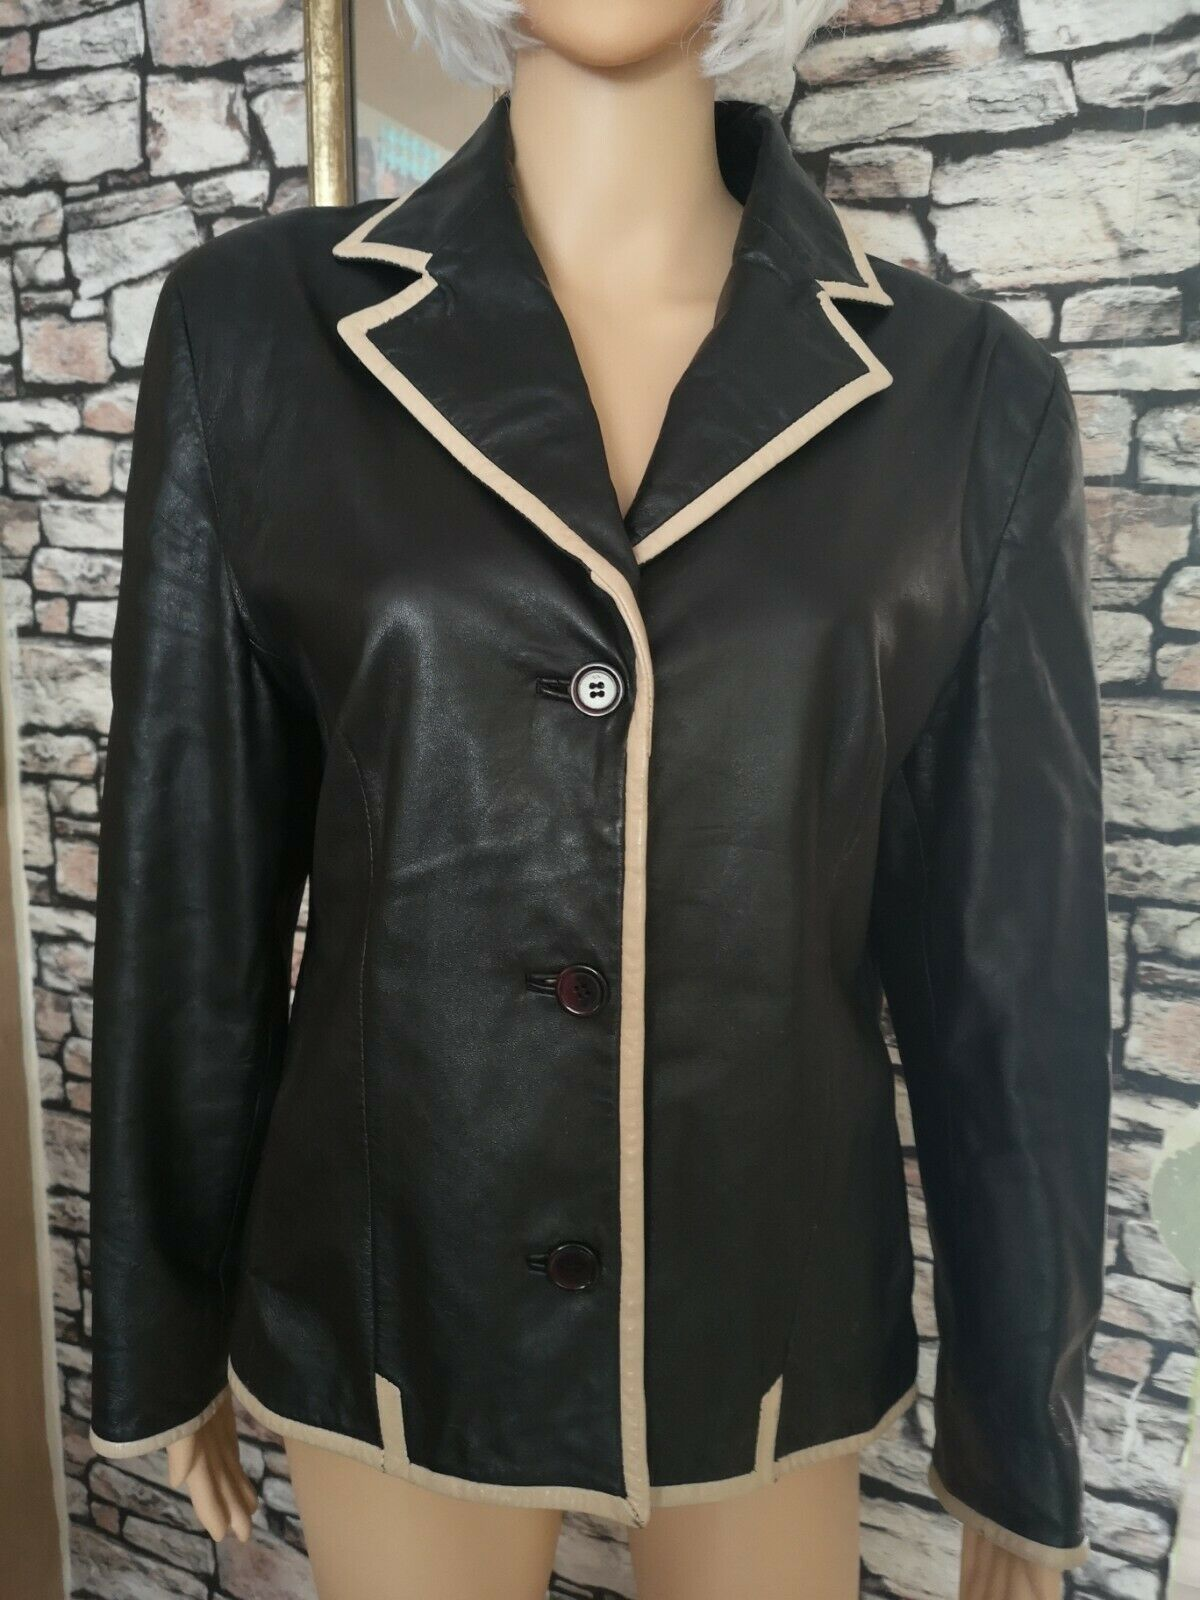 Betty Barclay Black Jacket 16. Excellent condition